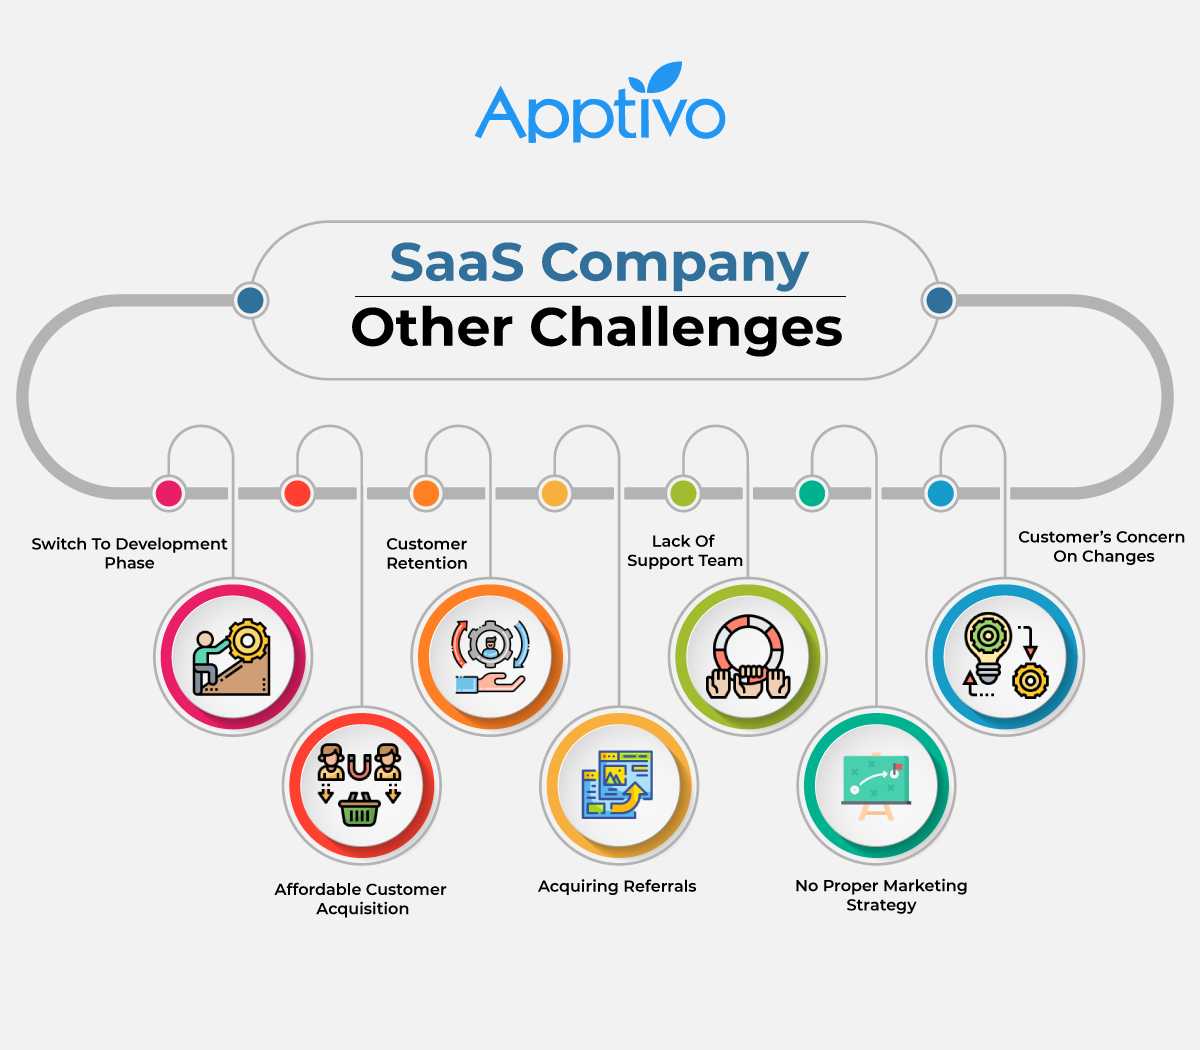 Challenges faced by SaaS Companies